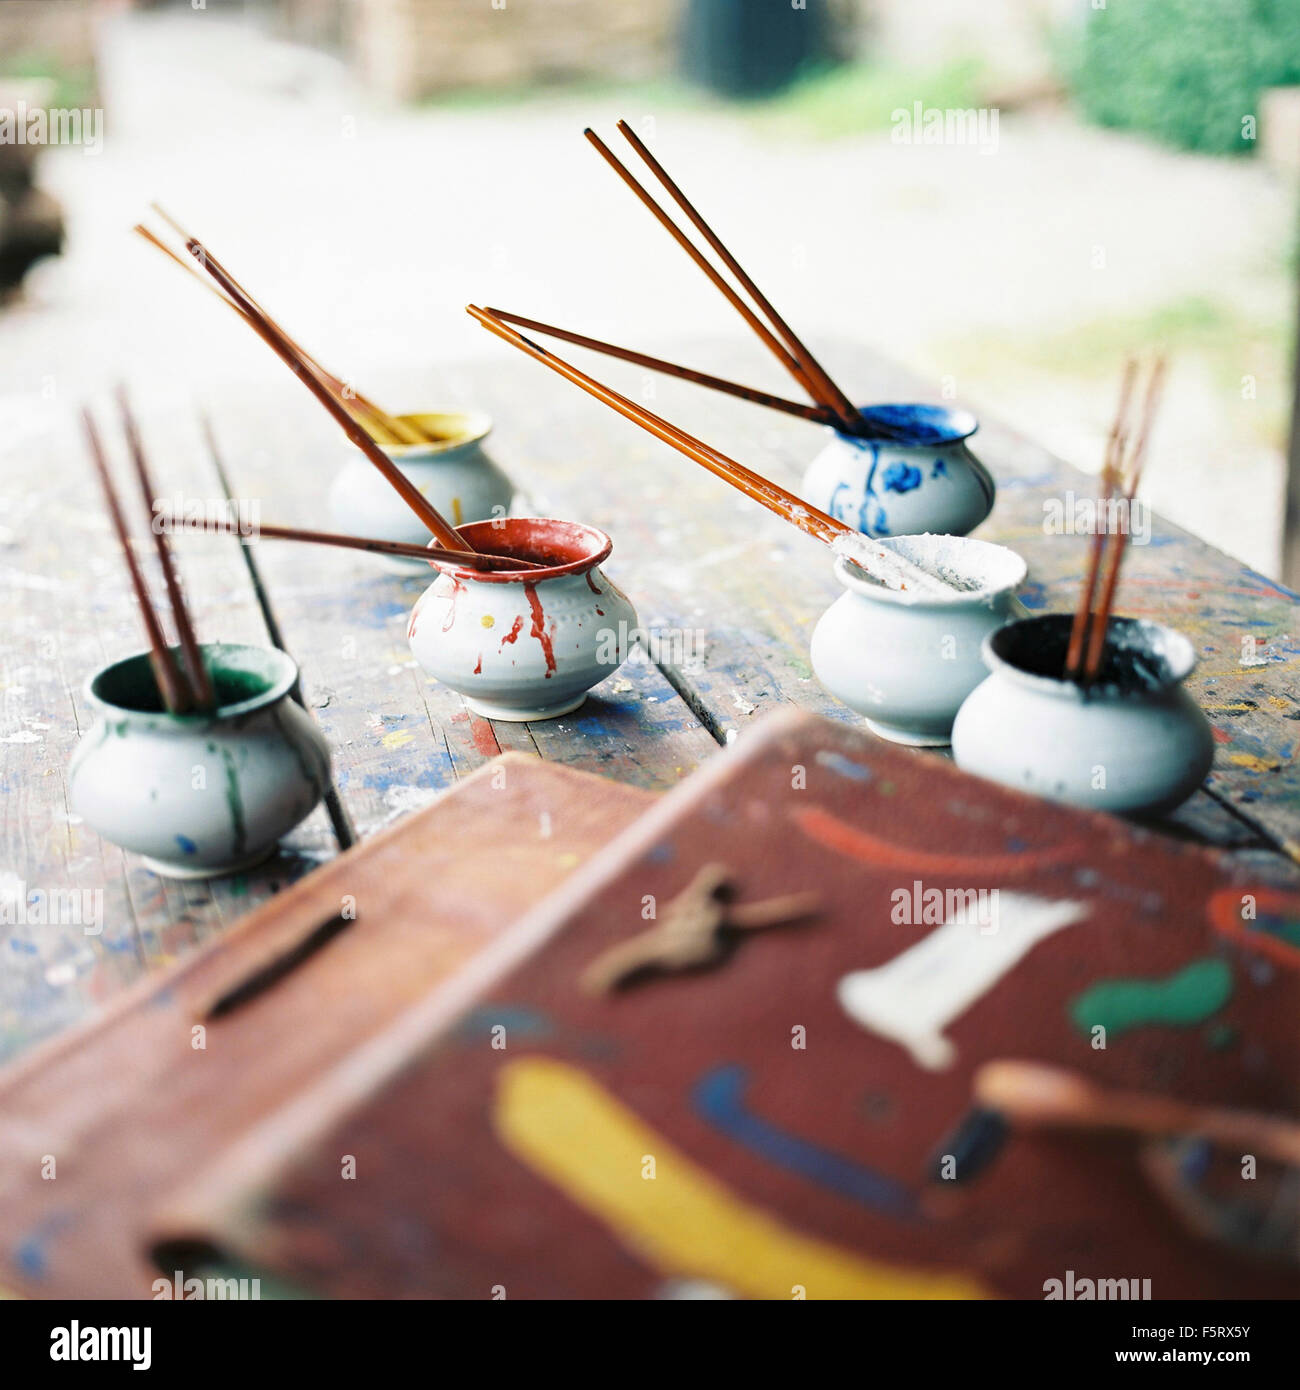 Sweden, Oland, Paintbrushes in small bowls - Stock Image